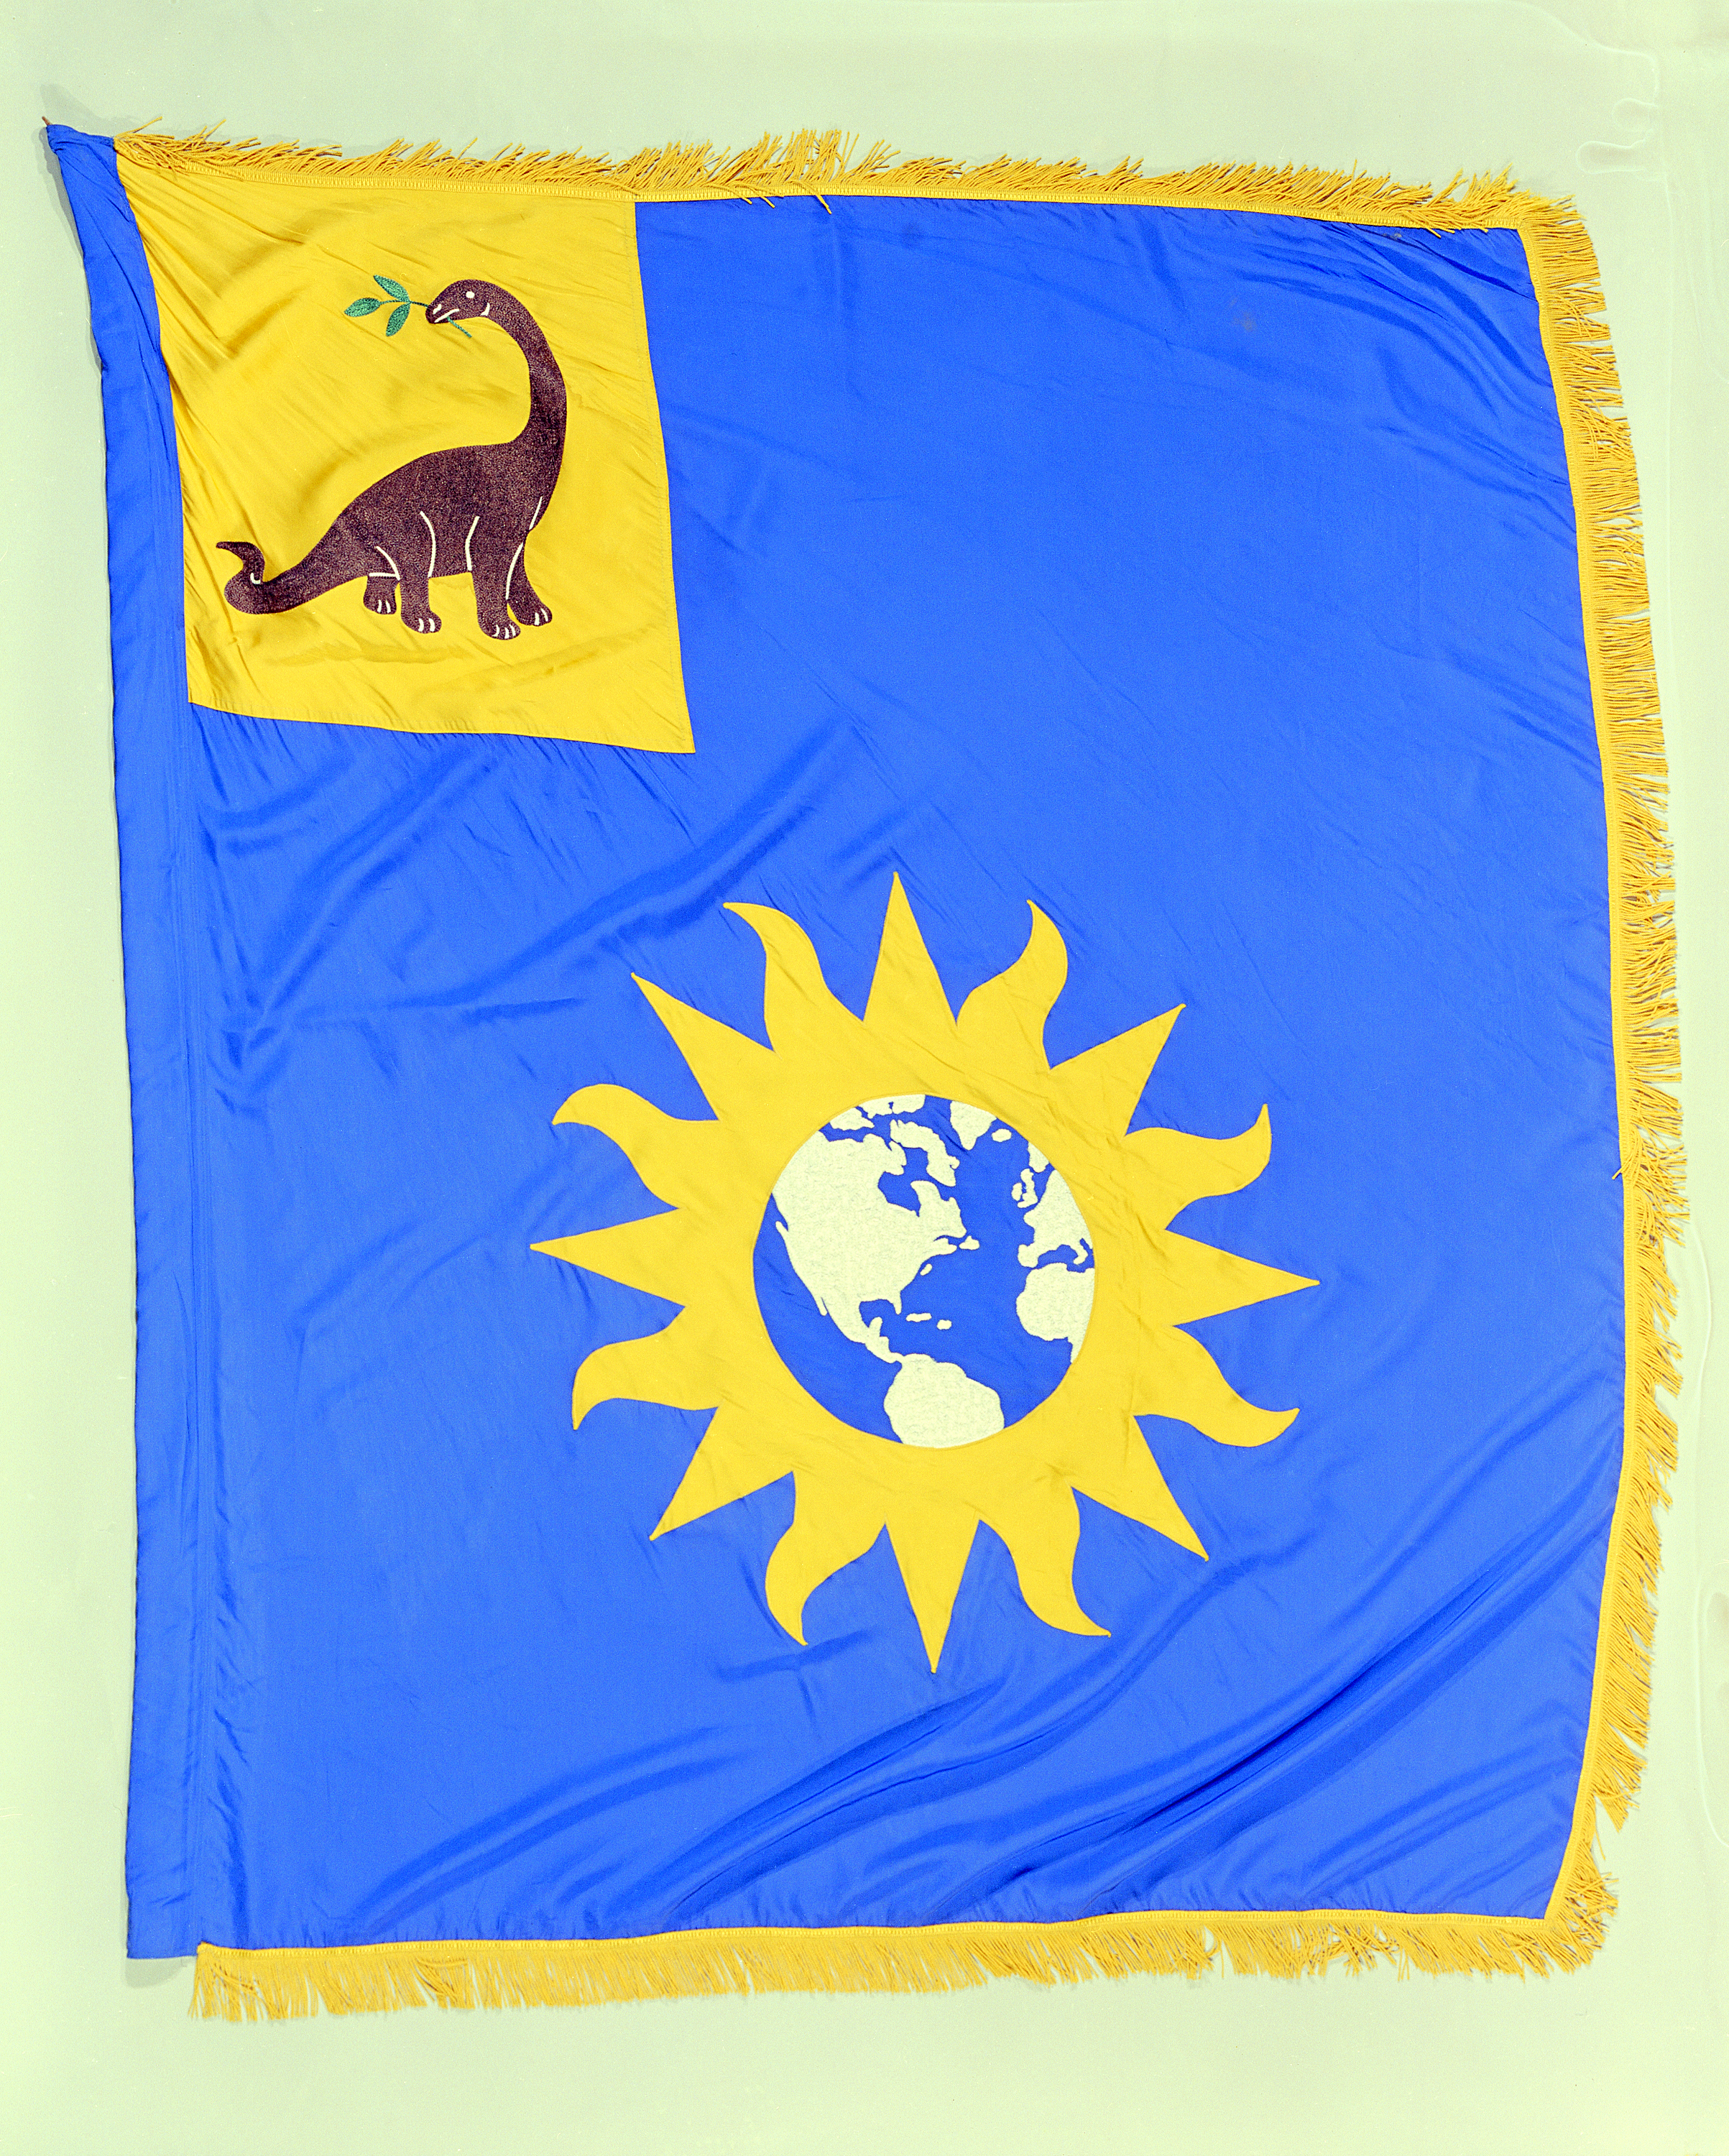 National Museum of Natural History flag